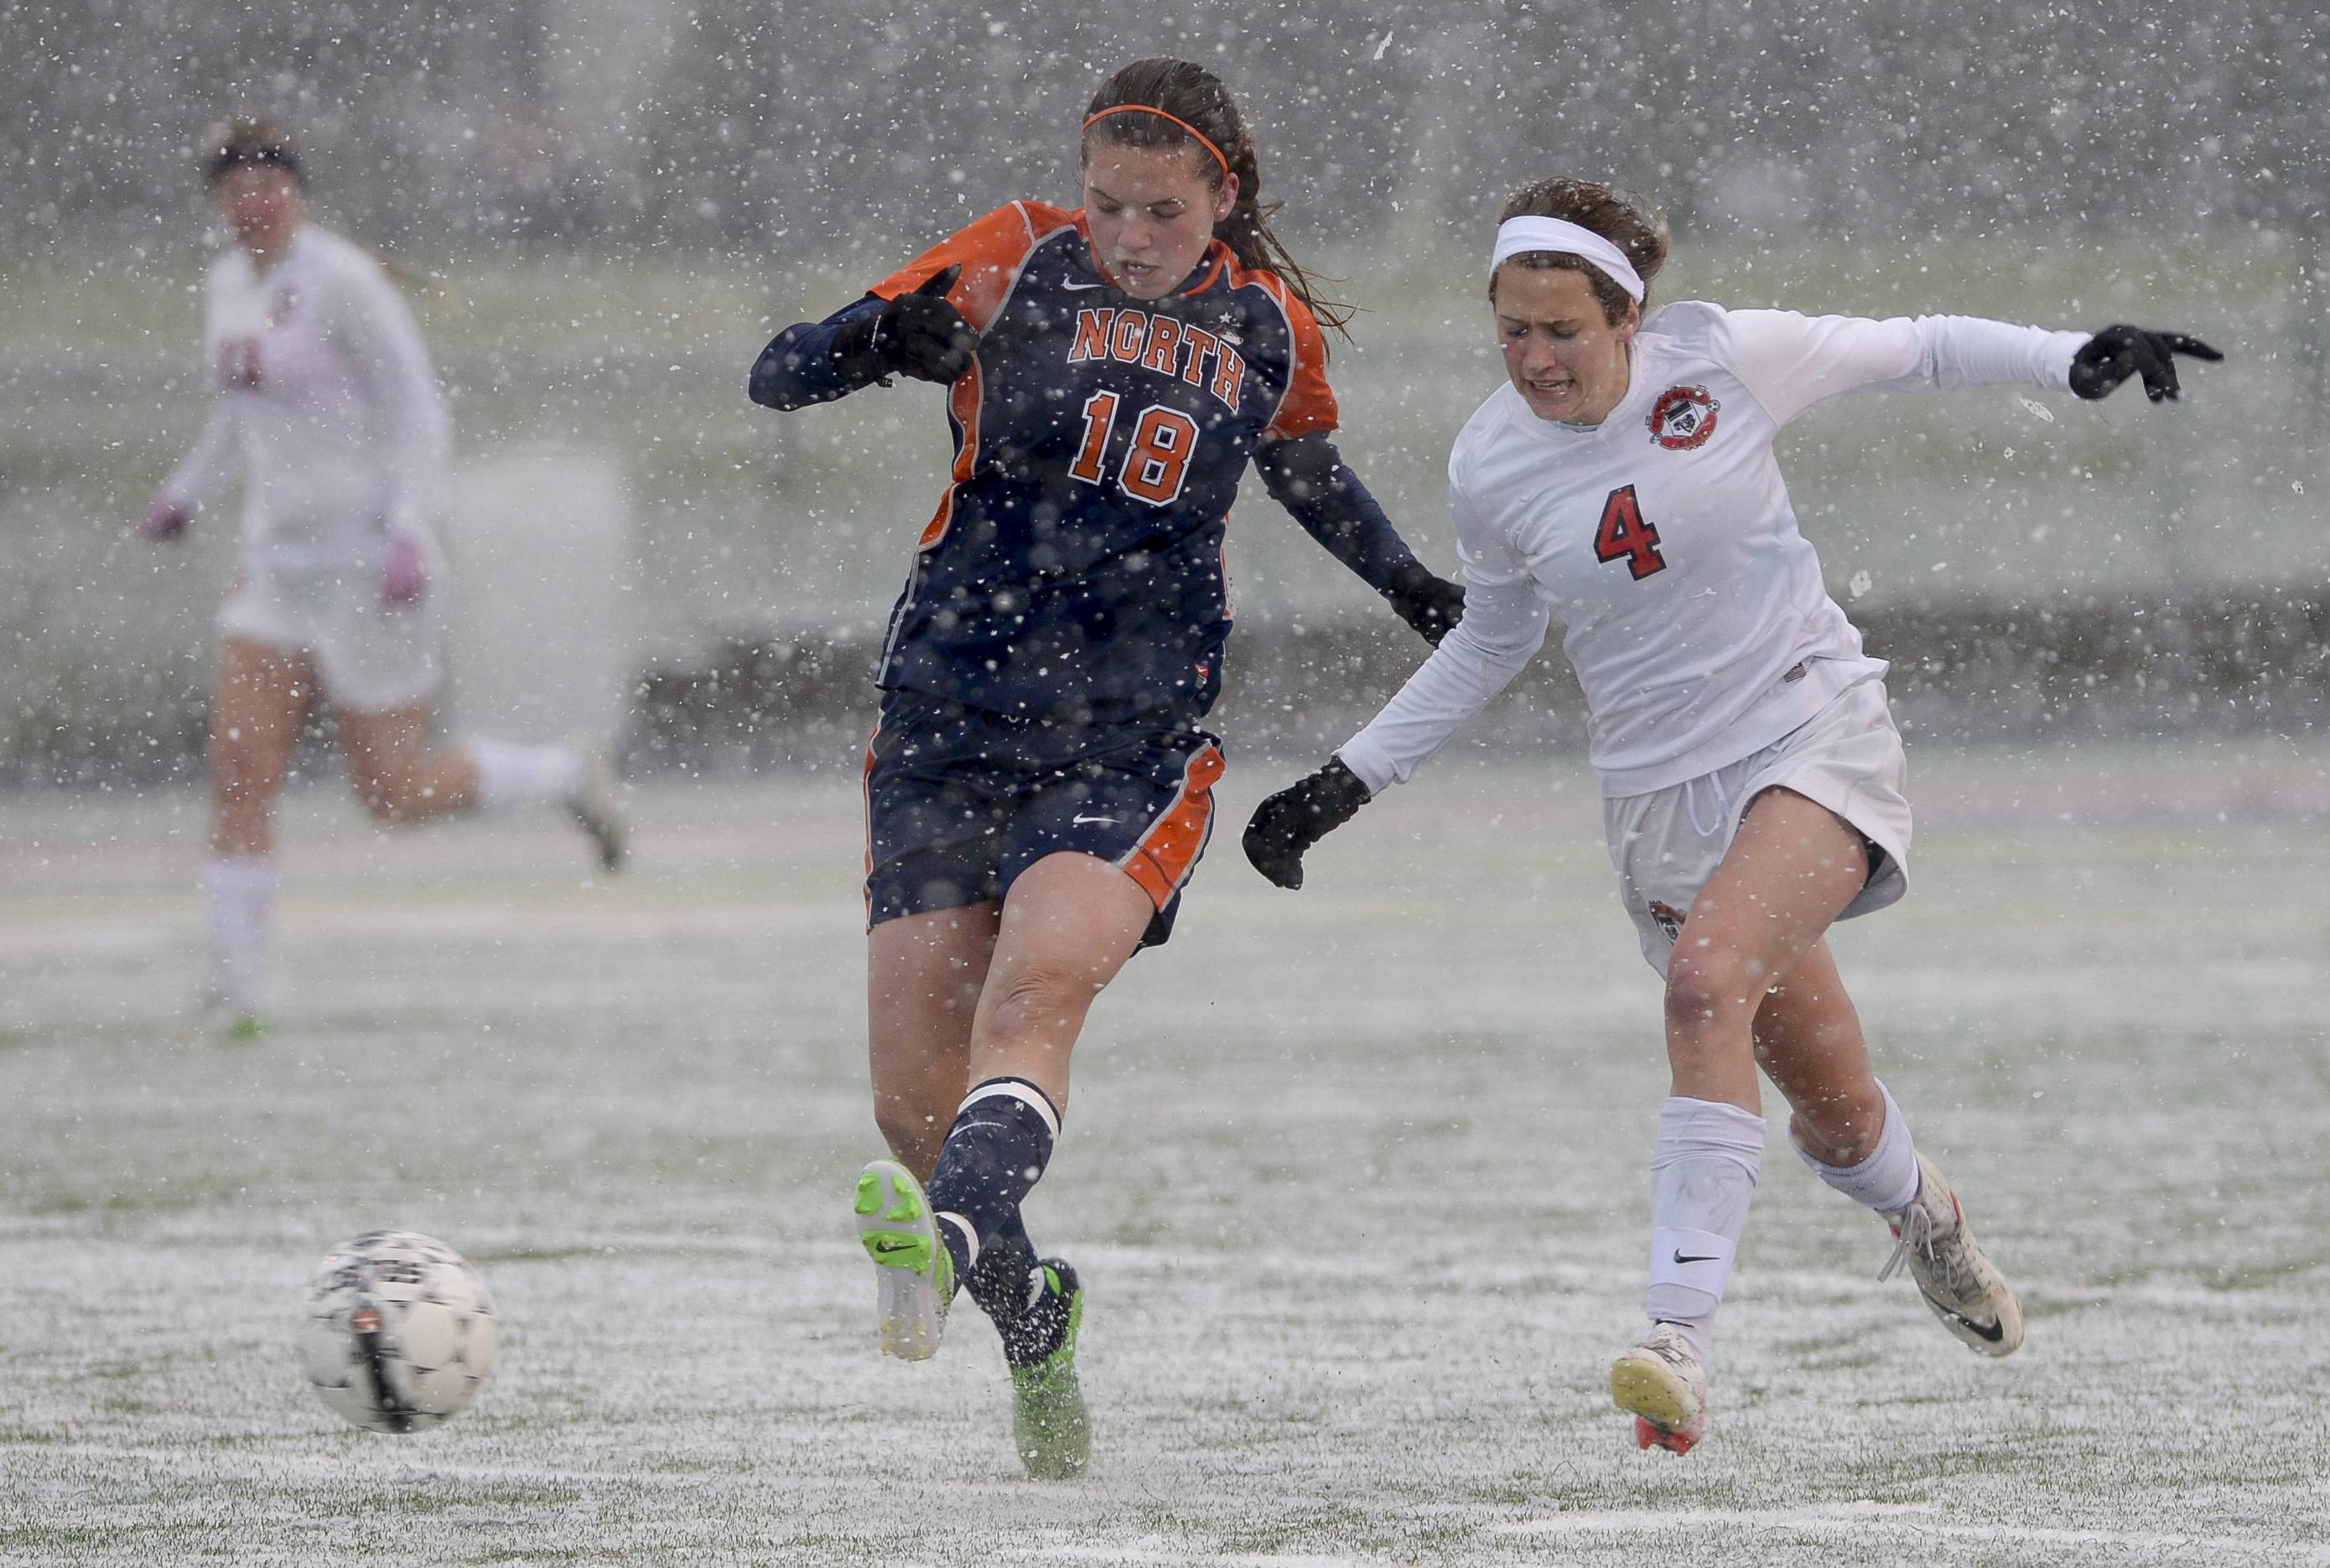 Naperville North's Morgan Krause and Glenbard East's Alex Ruffer chase down the ball during a snow shower Monday in Lombard.